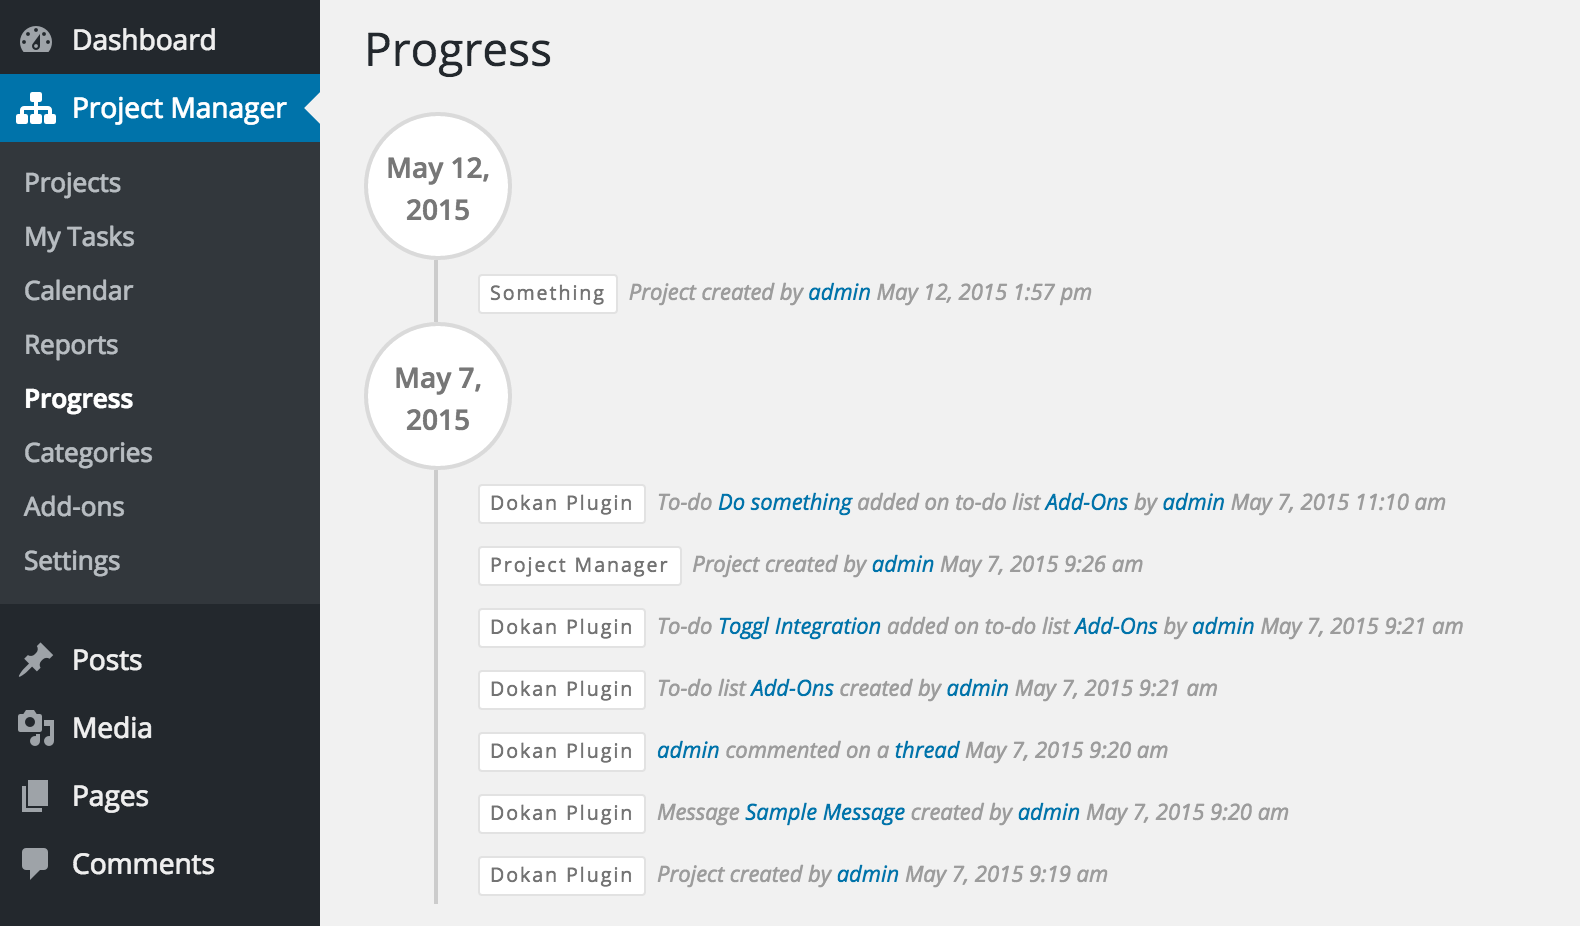 Project Manager Progress